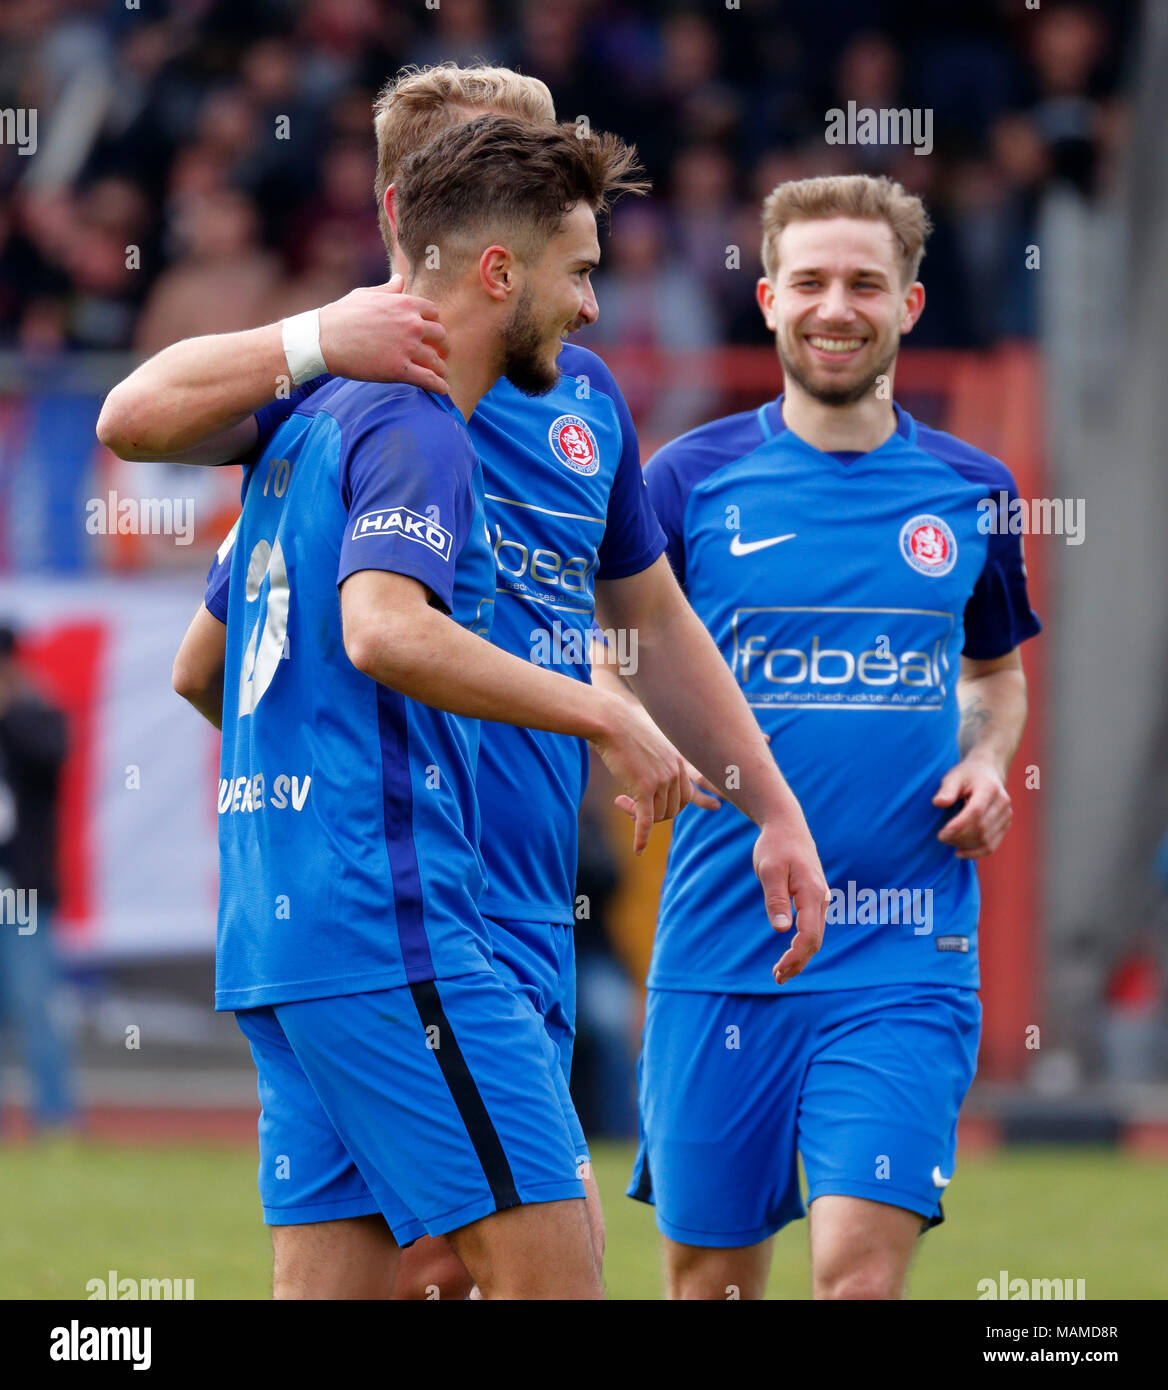 sports, football, Regional League West, 2017/2018, Rot Weiss Oberhausen vs Wuppertaler SV 1:1, Stadium Niederrhein in Oberhausen, rejoicing at the 1:1 equalizer, left goal scorer Enes Topal (WSV), right Dennis Dowidat (WSV) - Stock Image